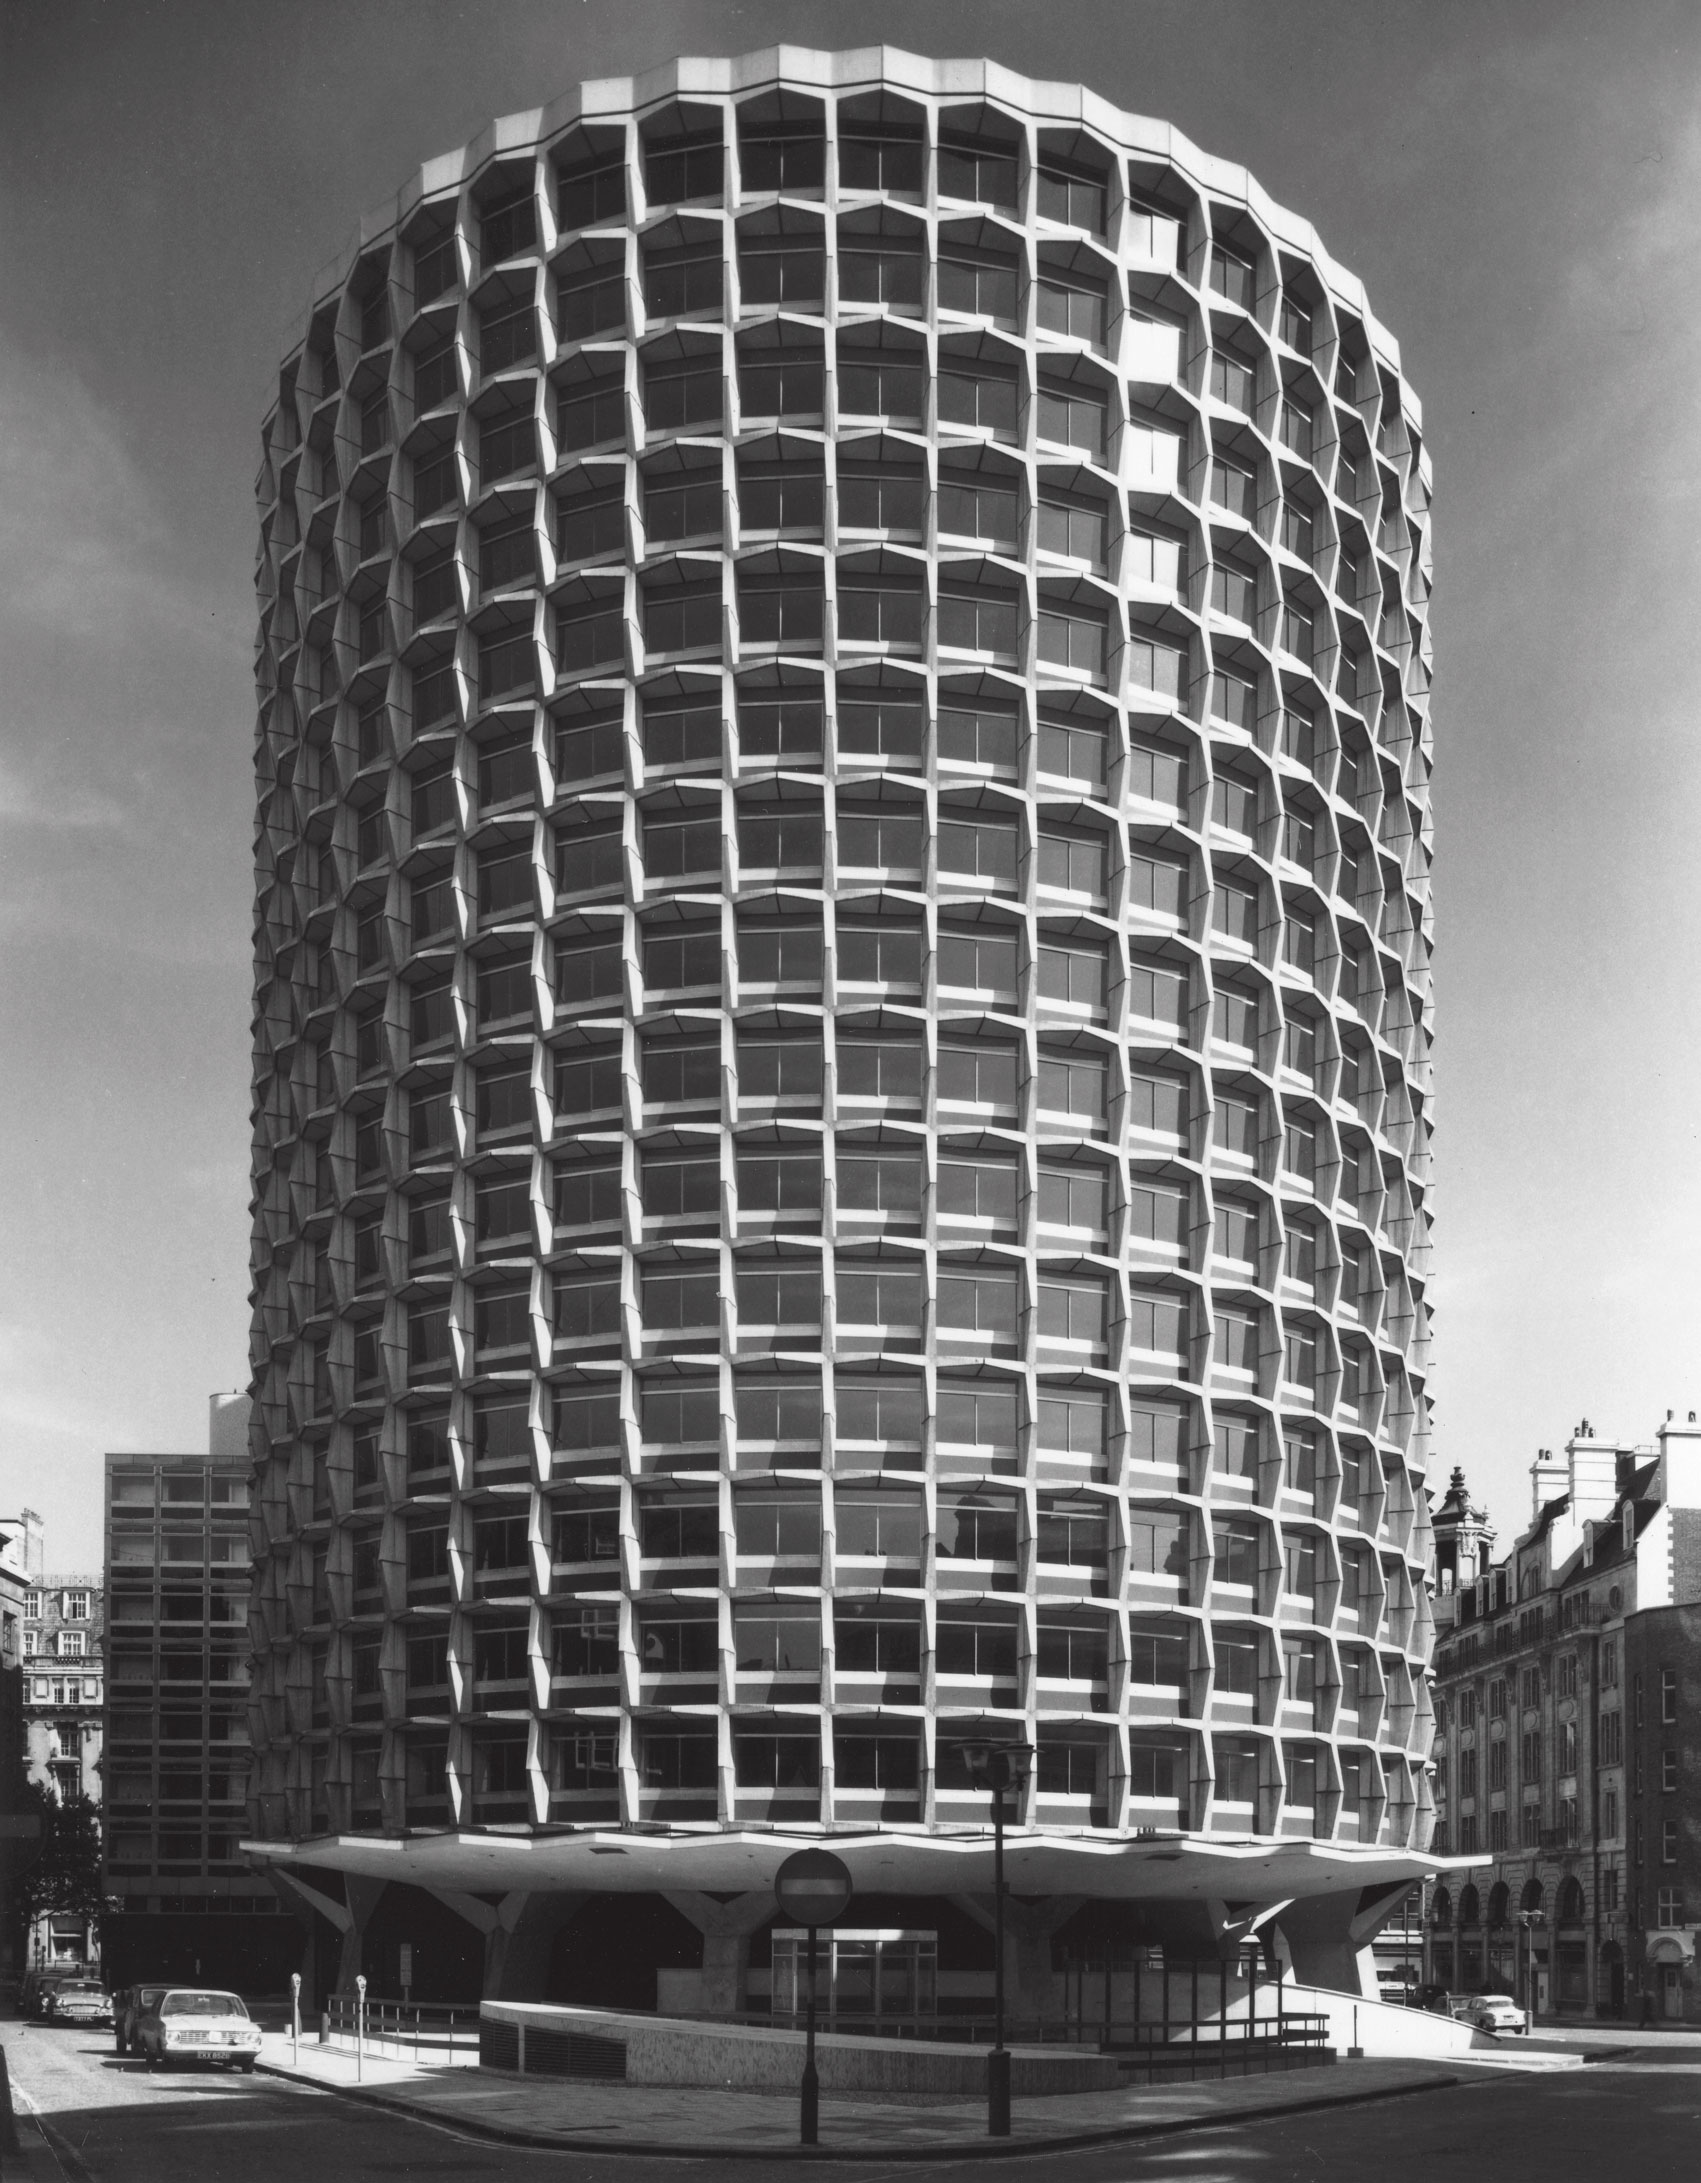 The Space House as featured in Atlas of Brutalist Architecture